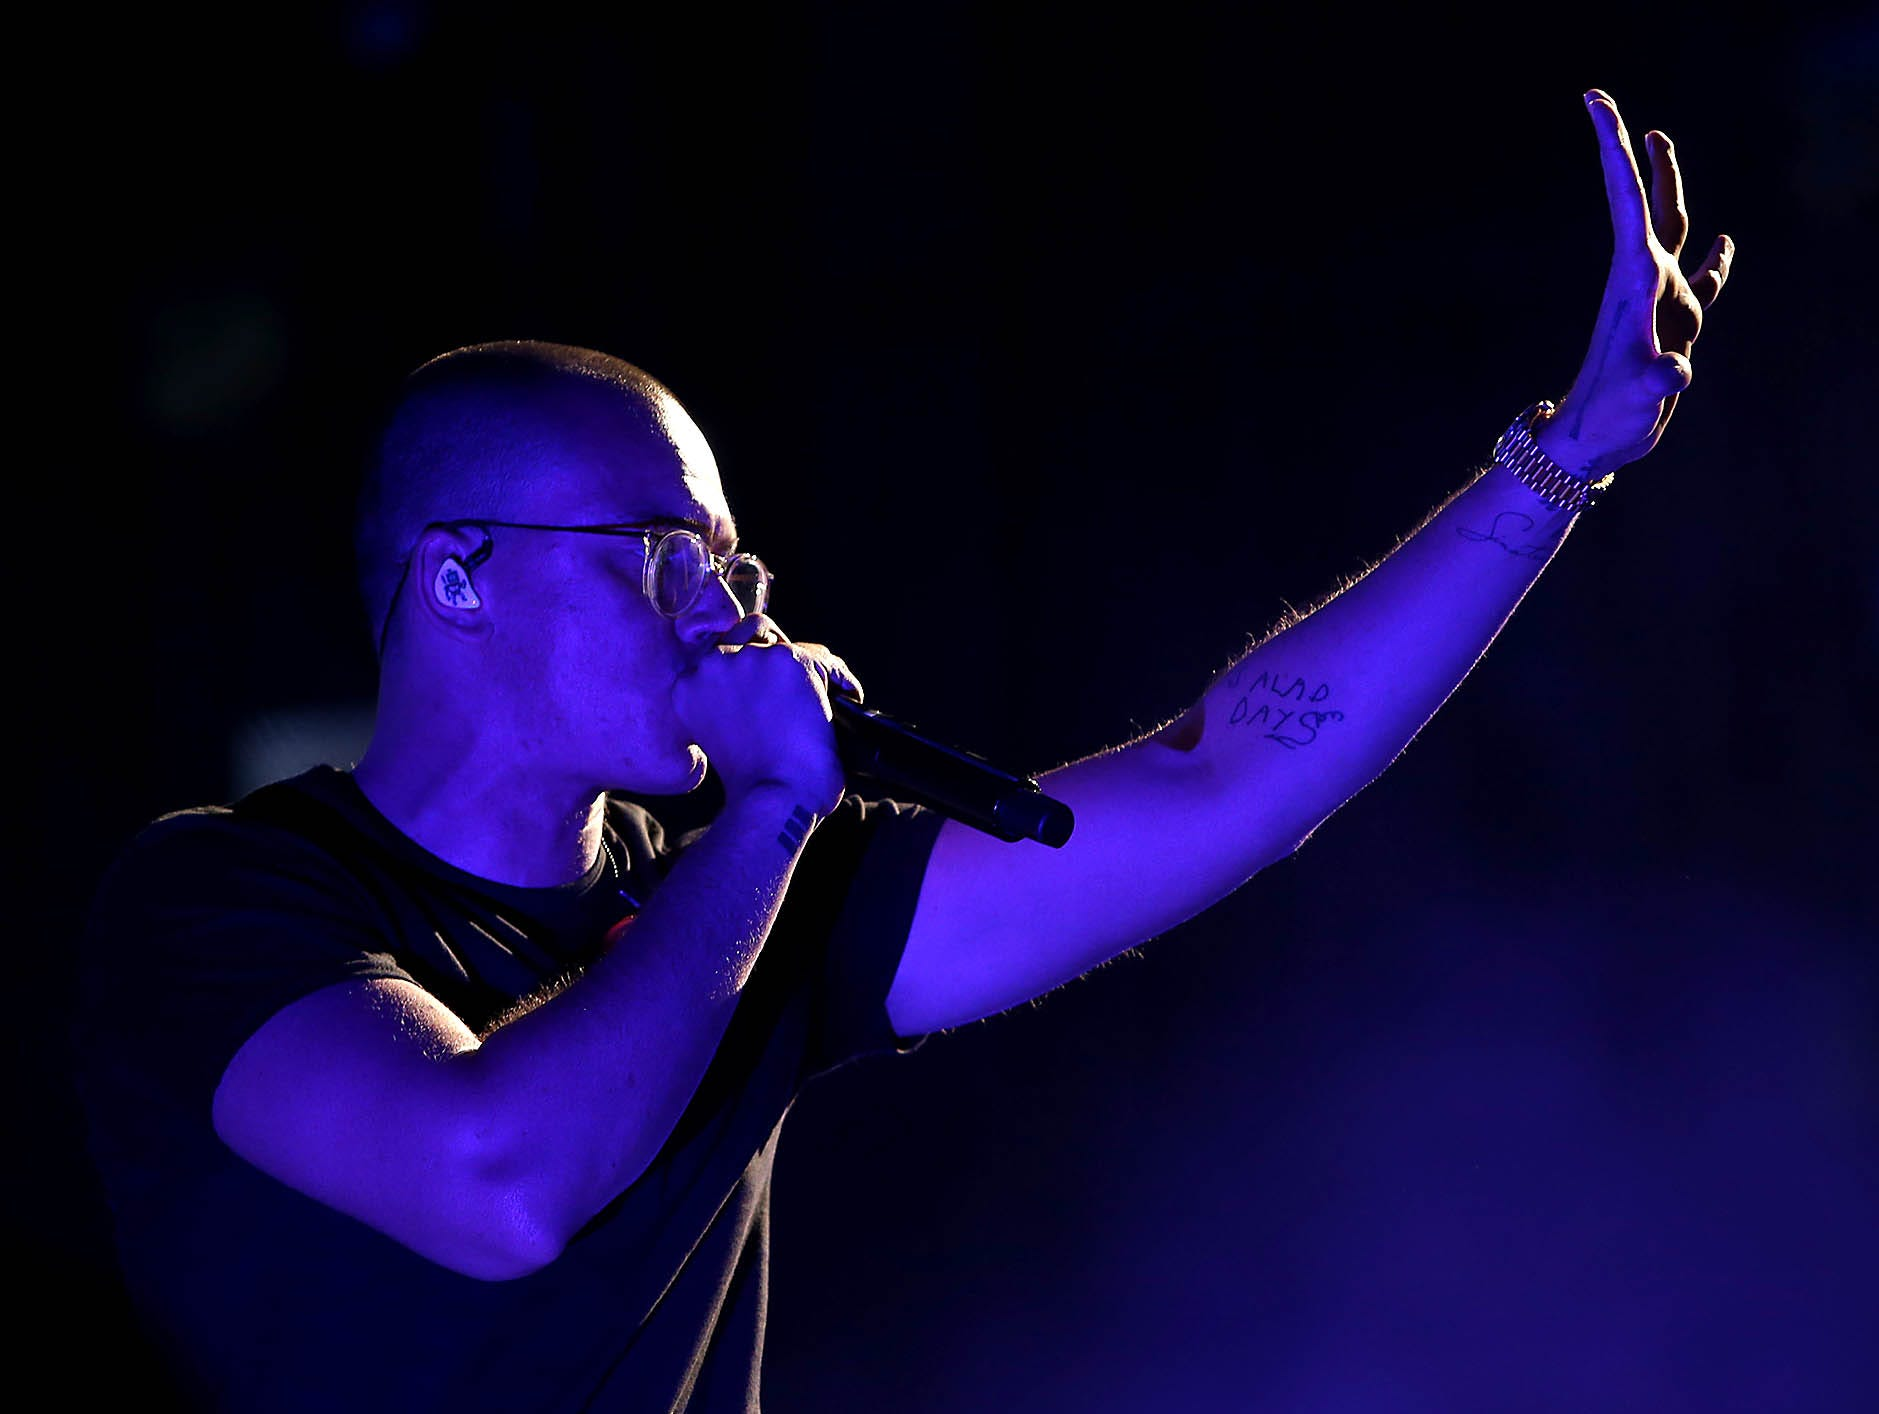 Logic performs during The Bobby Tarantino vs Everybody Tour at Ak-Chin Pavilion in Phoenix on Wednesday, July 25, 2018.